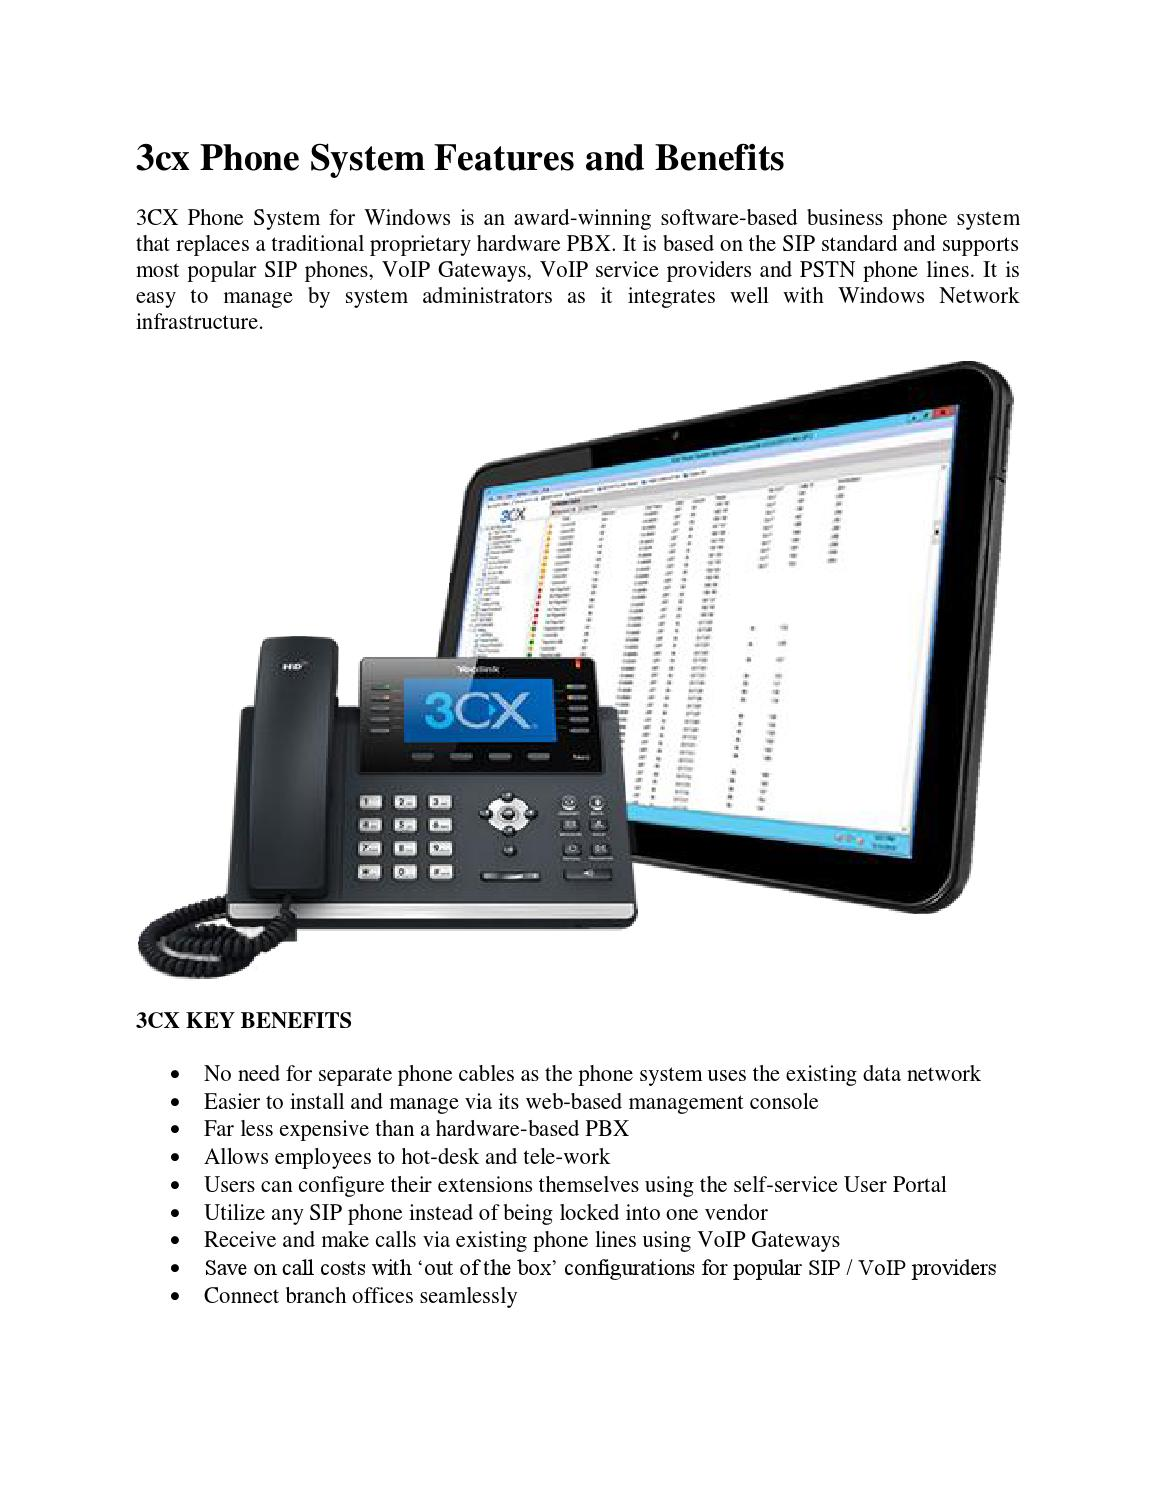 3cx phone system features and benefits by Terence King - issuu